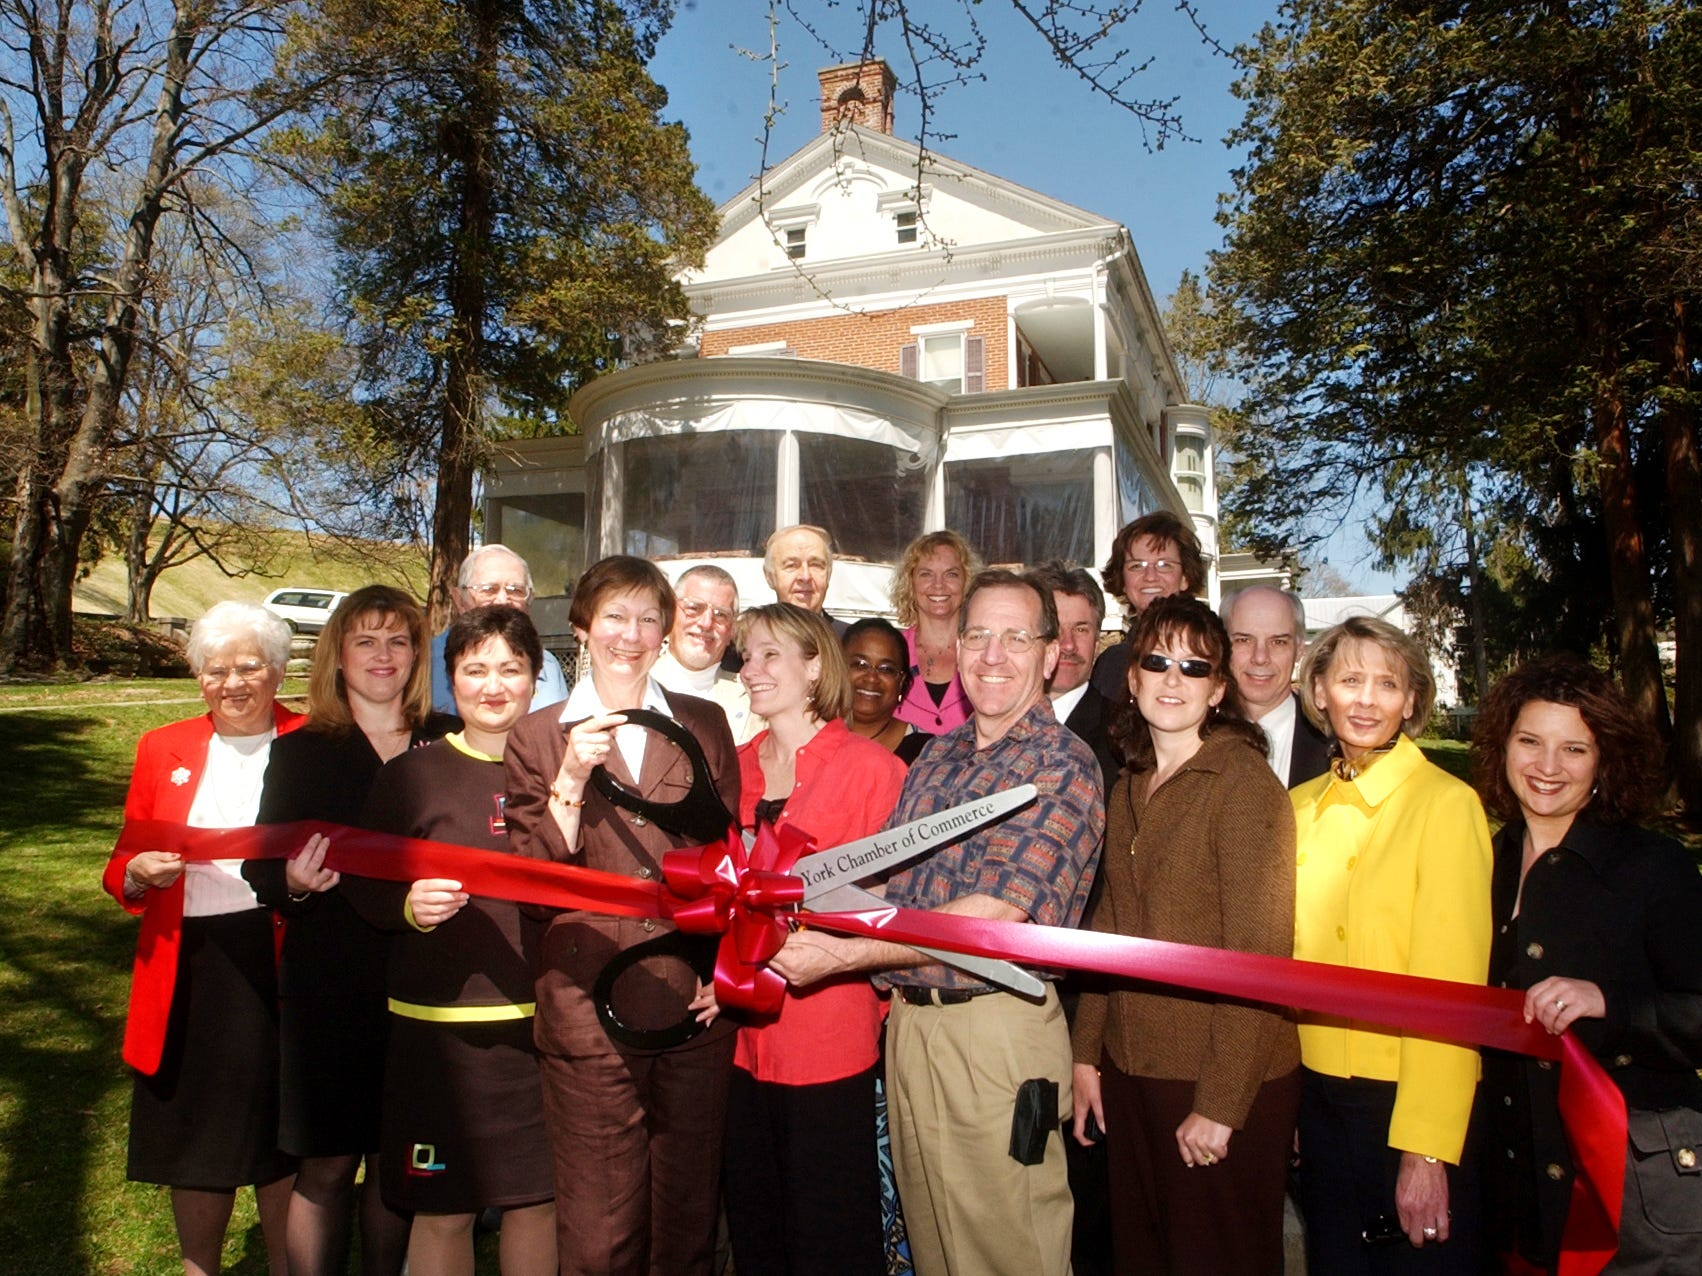 Shary Smith holds giant scissors with the help of her daughter, Heather Welsh, center front, and her husband, Wade Lady, to Welsh's right, as they are surrounded by friends, business associates and others during ribbon-cutting ceremony at the Emig Mansion staged by York County Chamber of Commerce. Smith bought the mansion in 2004 with her husband.